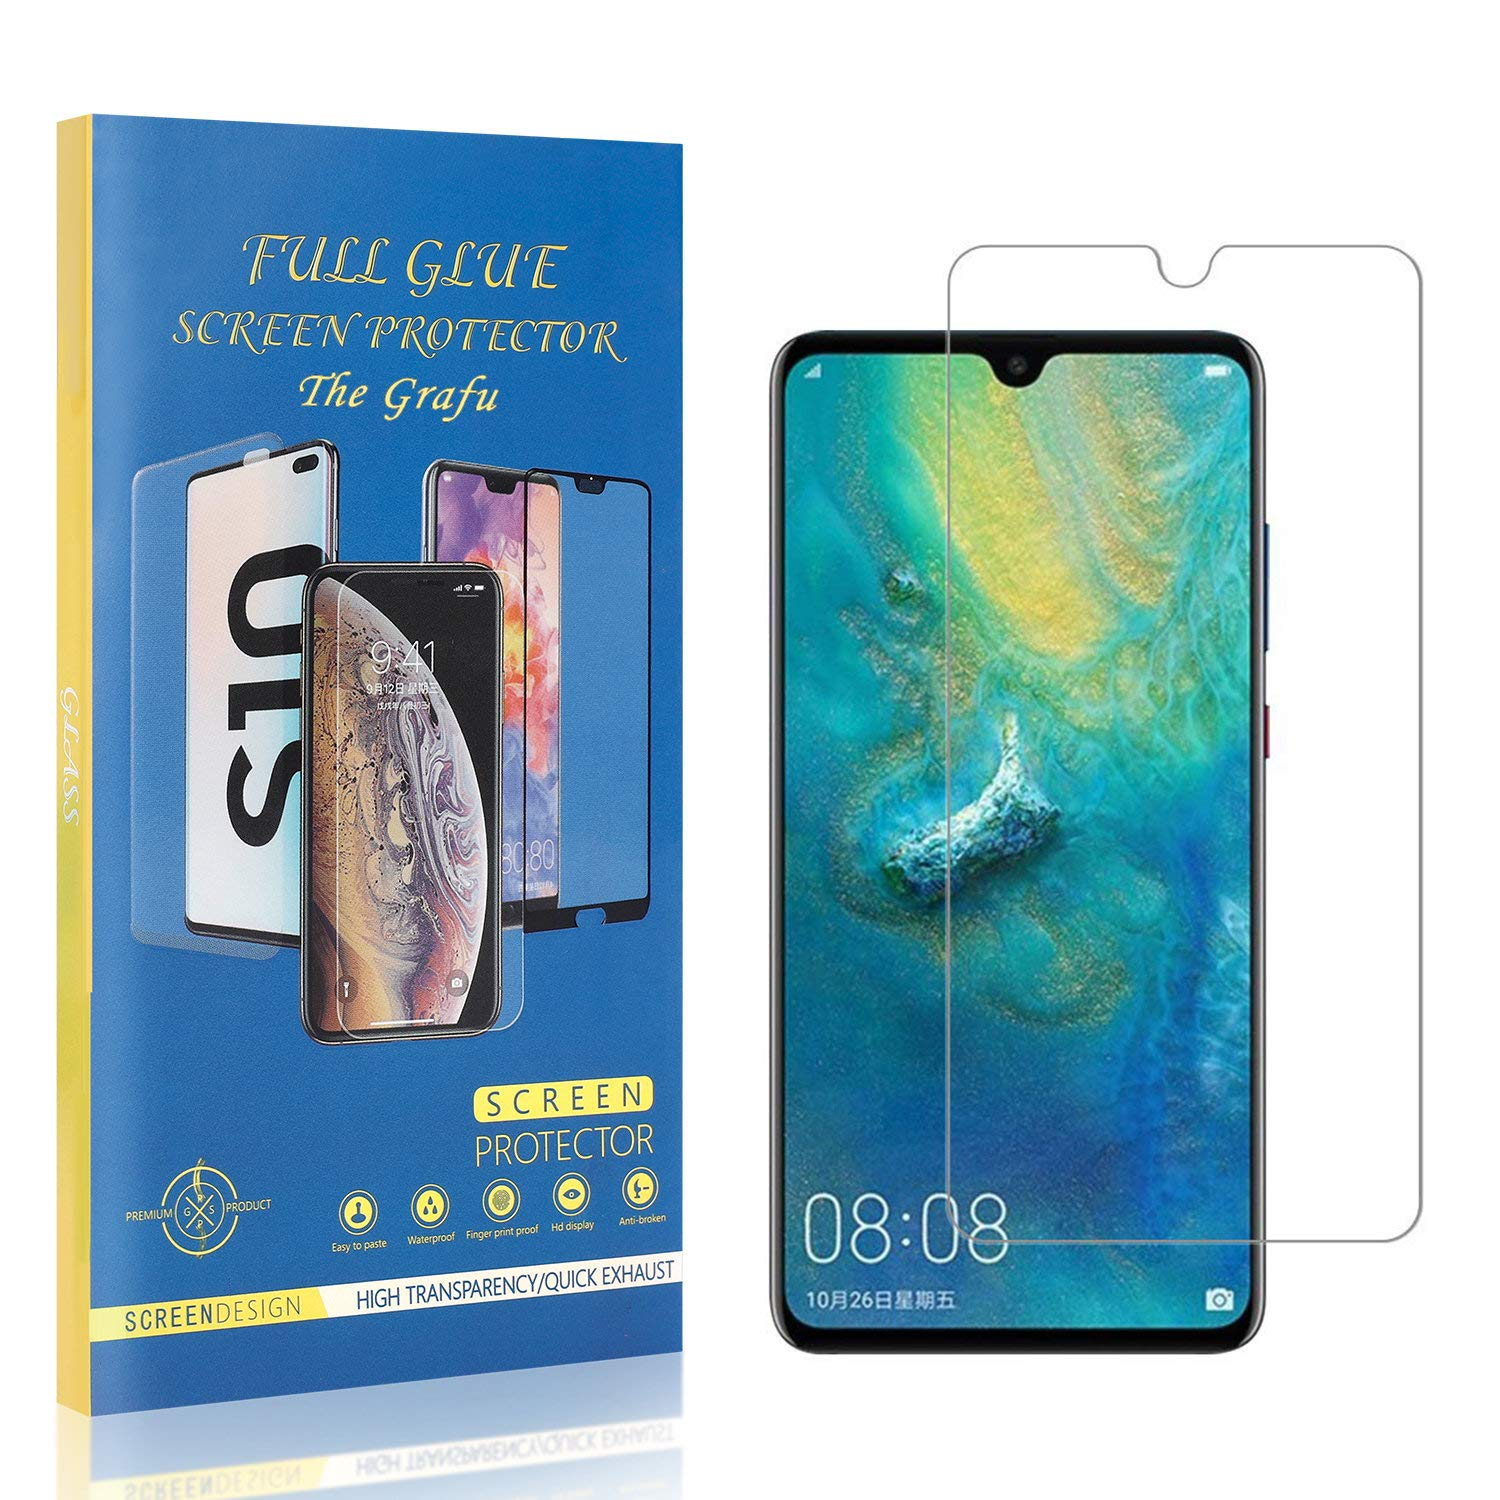 3 Pack The Grafu Screen Protector for Huawei Mate 10 Pro Easy Installation Tempered Glass Bubble Free High Transparency Screen Protector for Huawei Mate 10 Pro